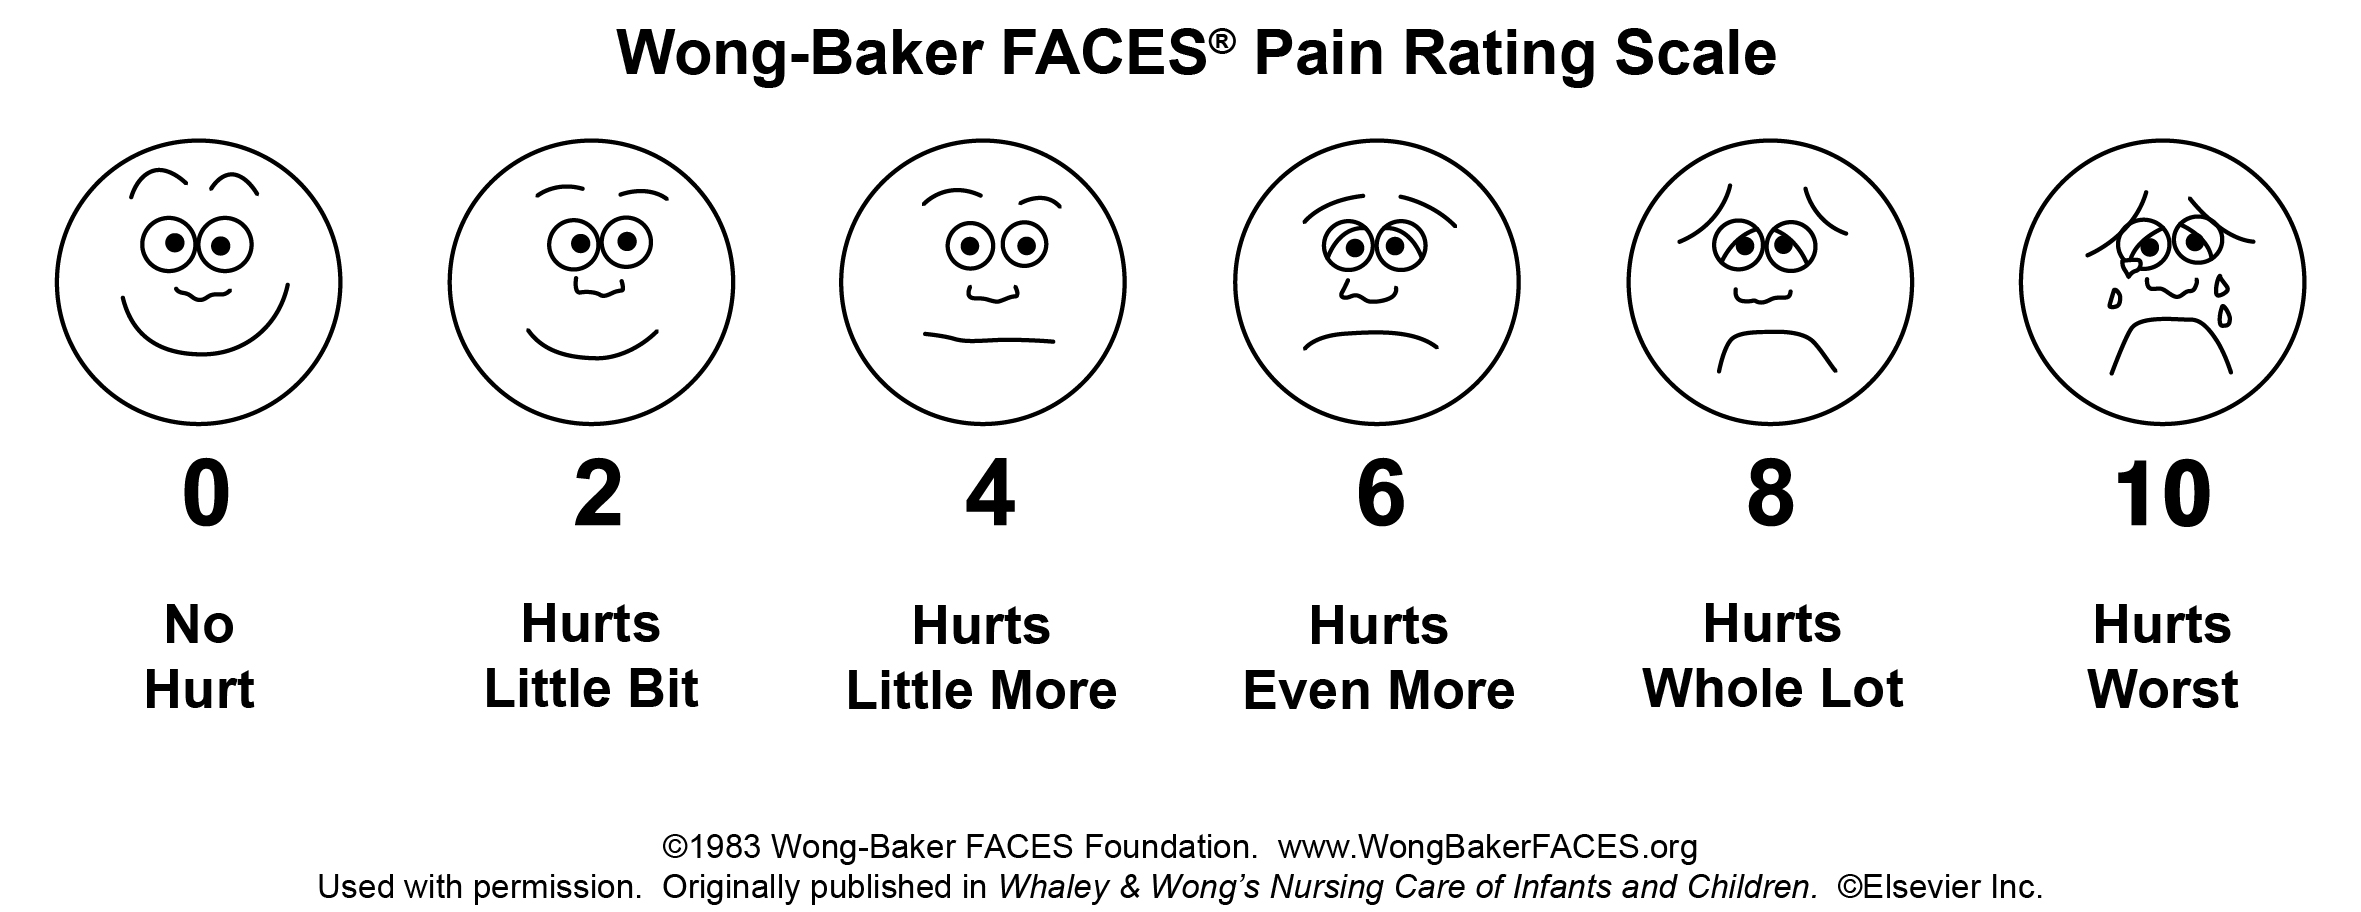 Adorable image with regard to wong baker pain scale printable